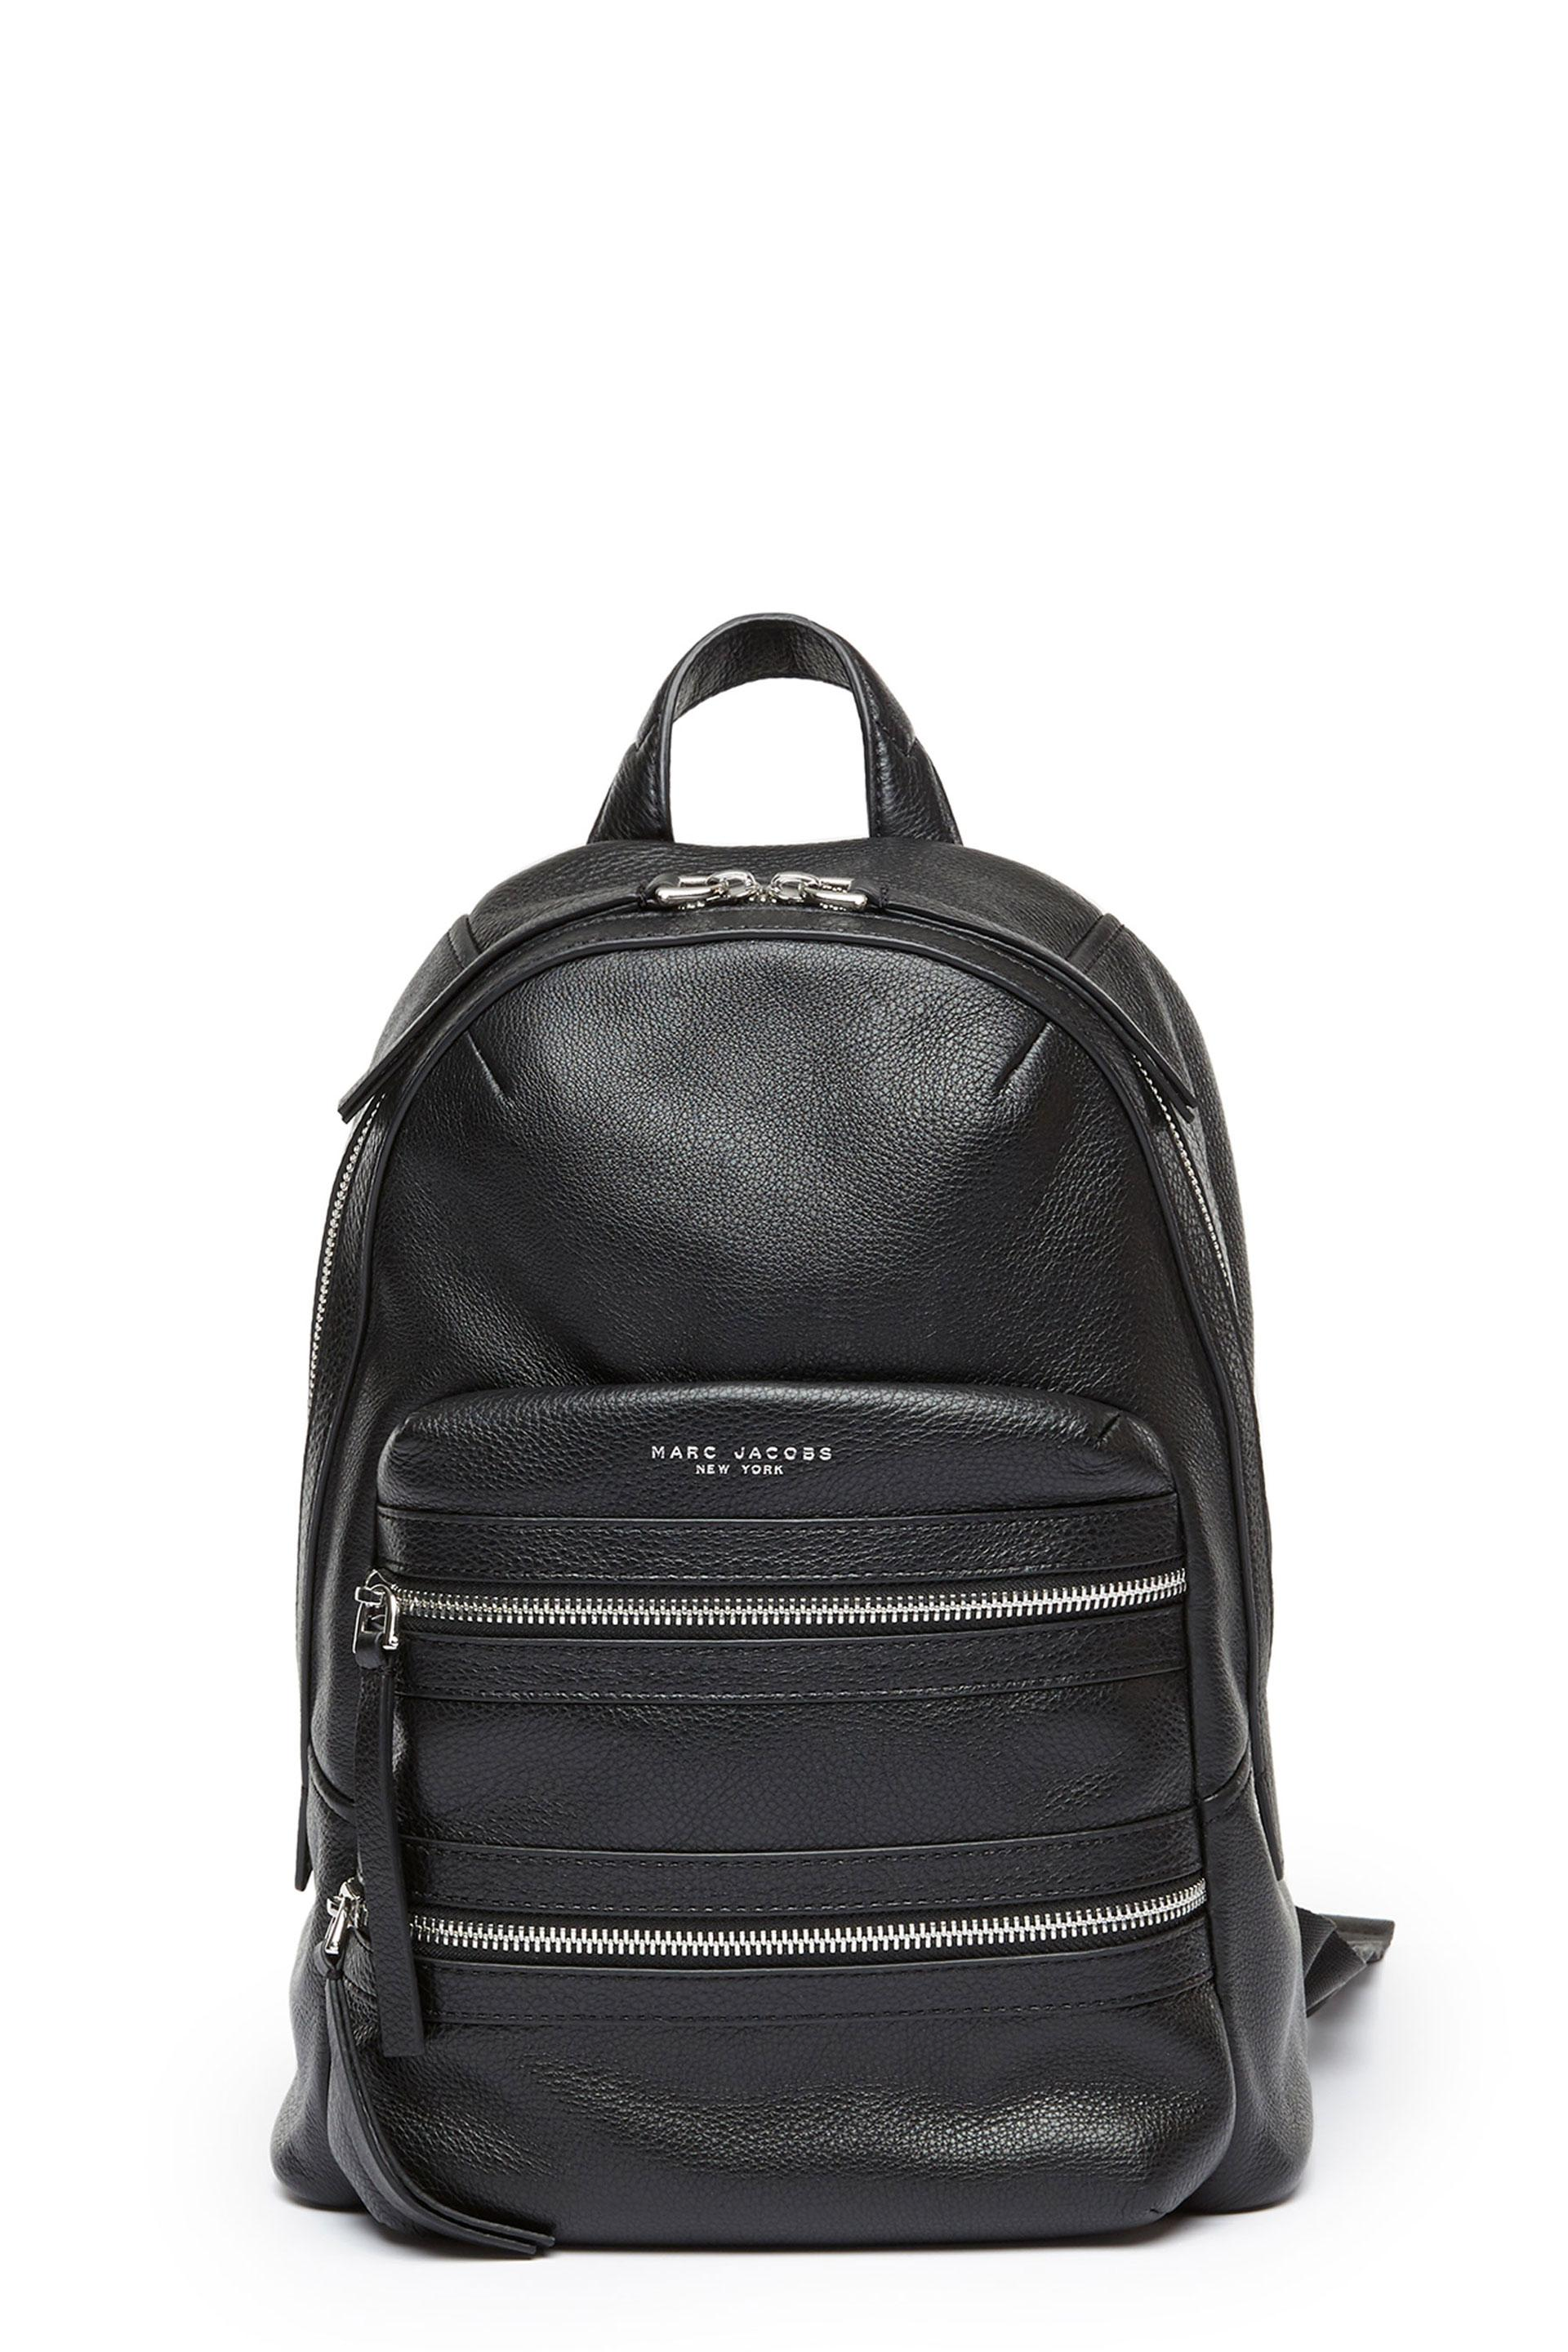 1c79e2e4df1a Marc Jacobs Biker Leather-Trimmed Shell Backpack In Black